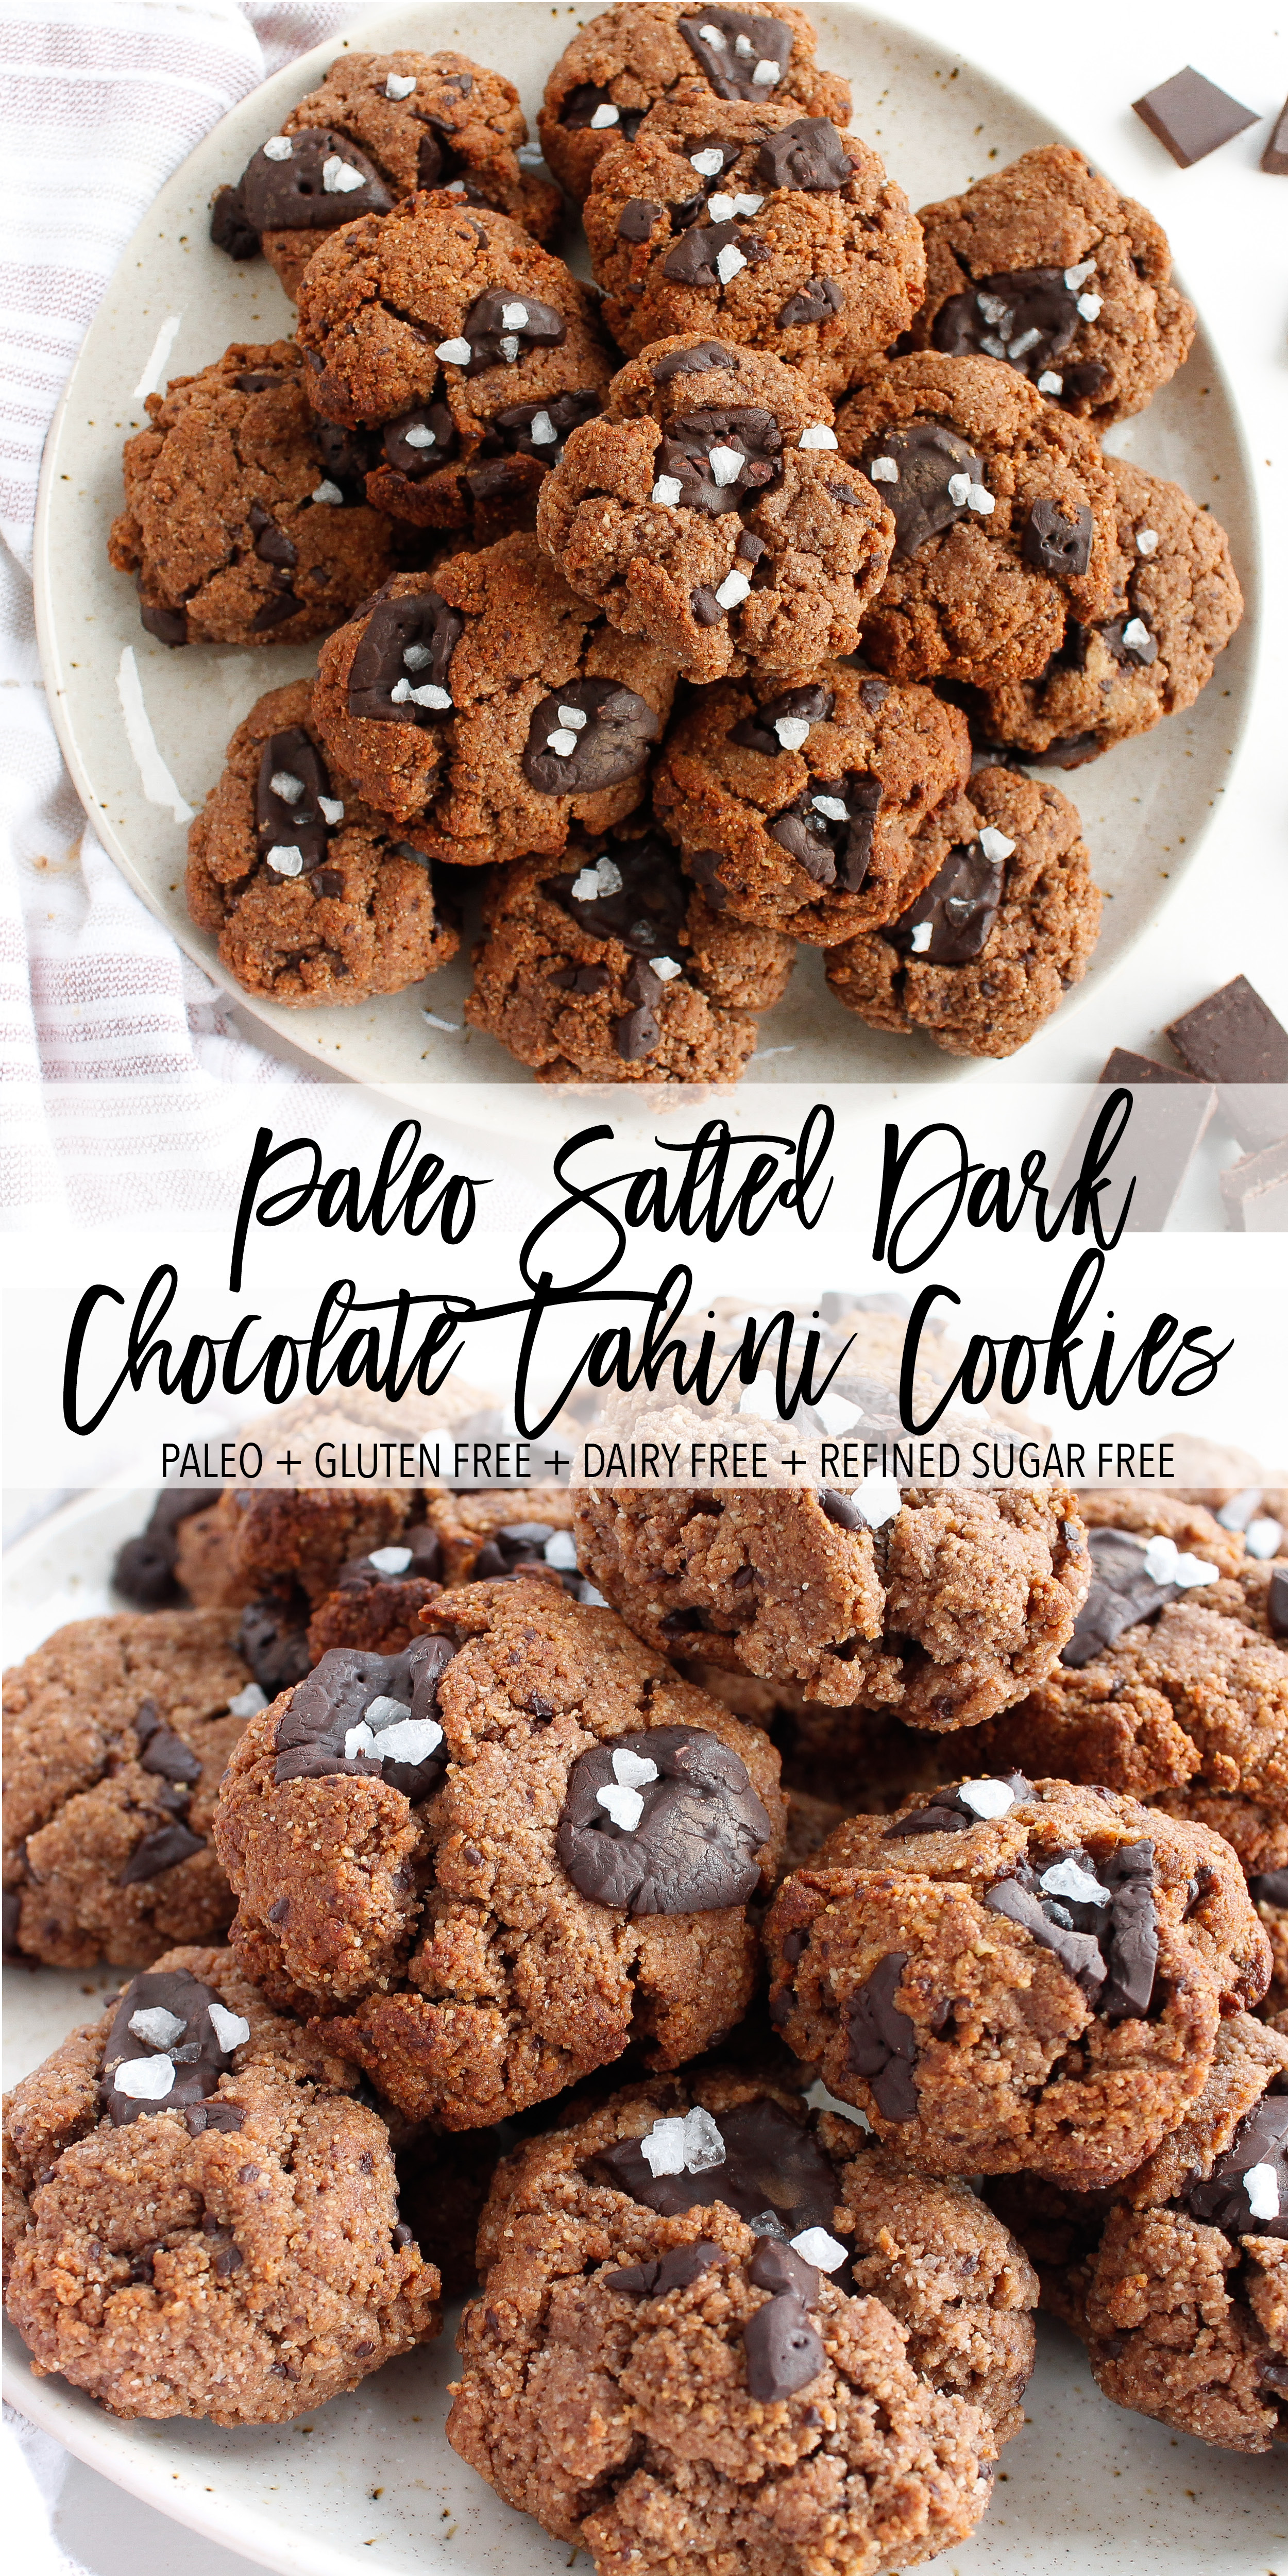 Paleo Salted Chocolate Cookies || These paleo salted chocolate cookies are grain free, gluten free, dairy free AND refined sugar free! Made with nourishing ingredients like raw cacao, tahini and almond flour, they satisfy your sweet tooth while also nourishing your body. The perfect healthy sweet treat or healthy midday snack. || plentyandwell.com || #paleocookies #chocolatecookies #grainfreebaking #grainfreerecipes